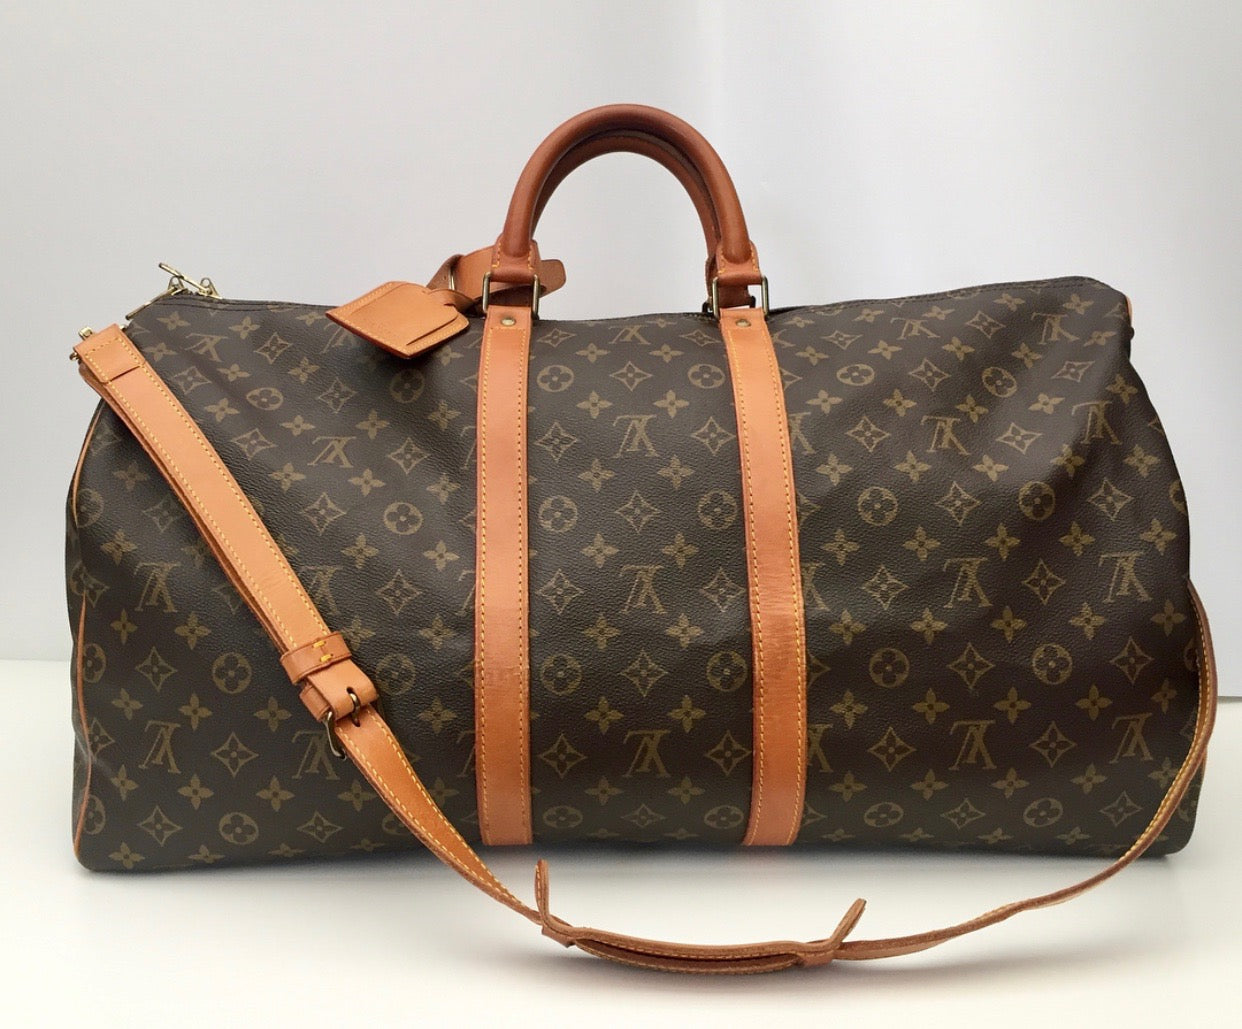 Keepall Bandoulière 55 Monogram - Iconics Preloved Luxury